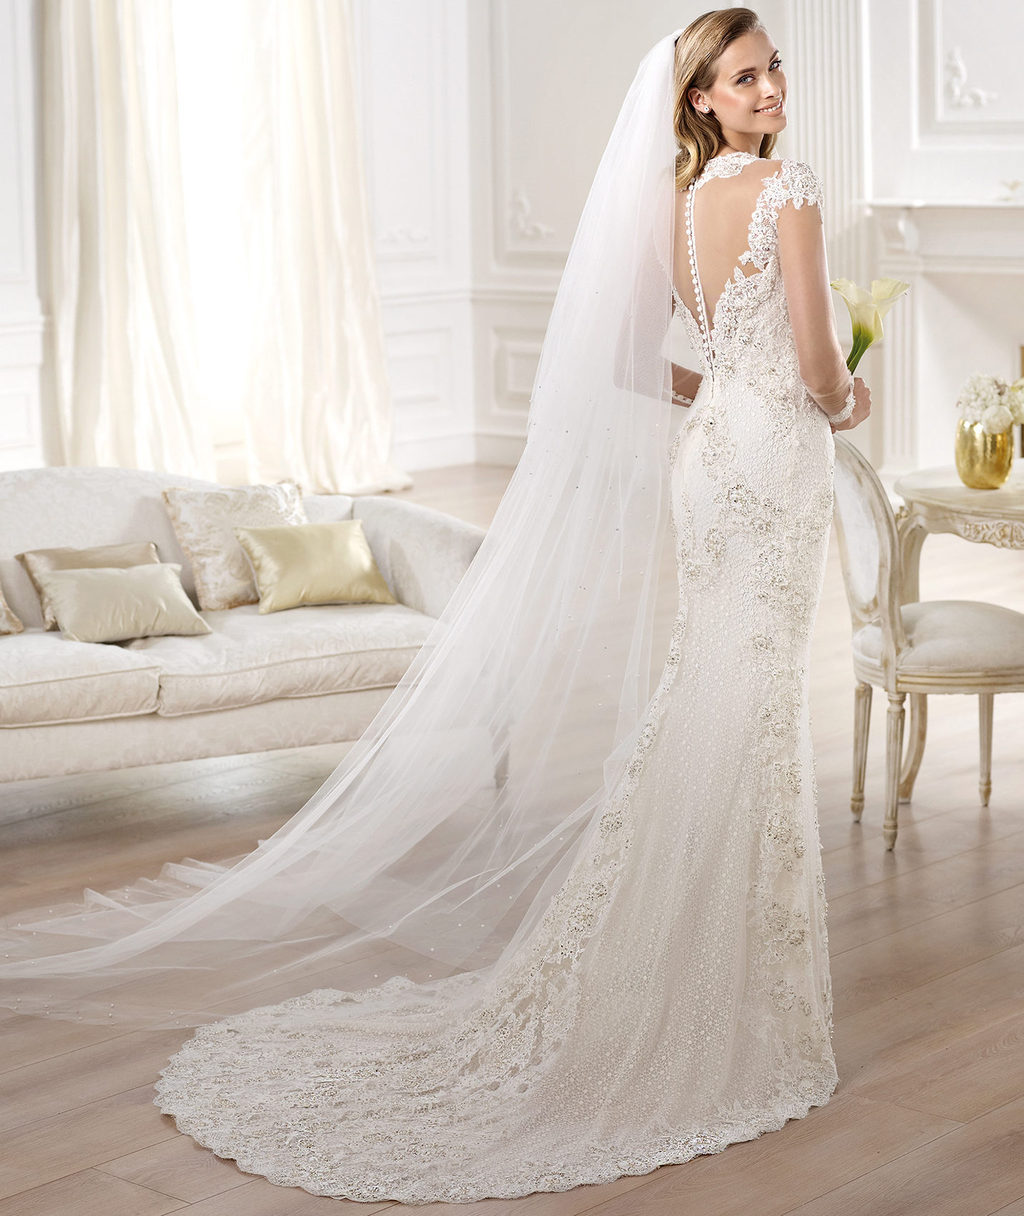 Yanida-wedding-dress-from-pronovias-atelier-2014-bridal.full